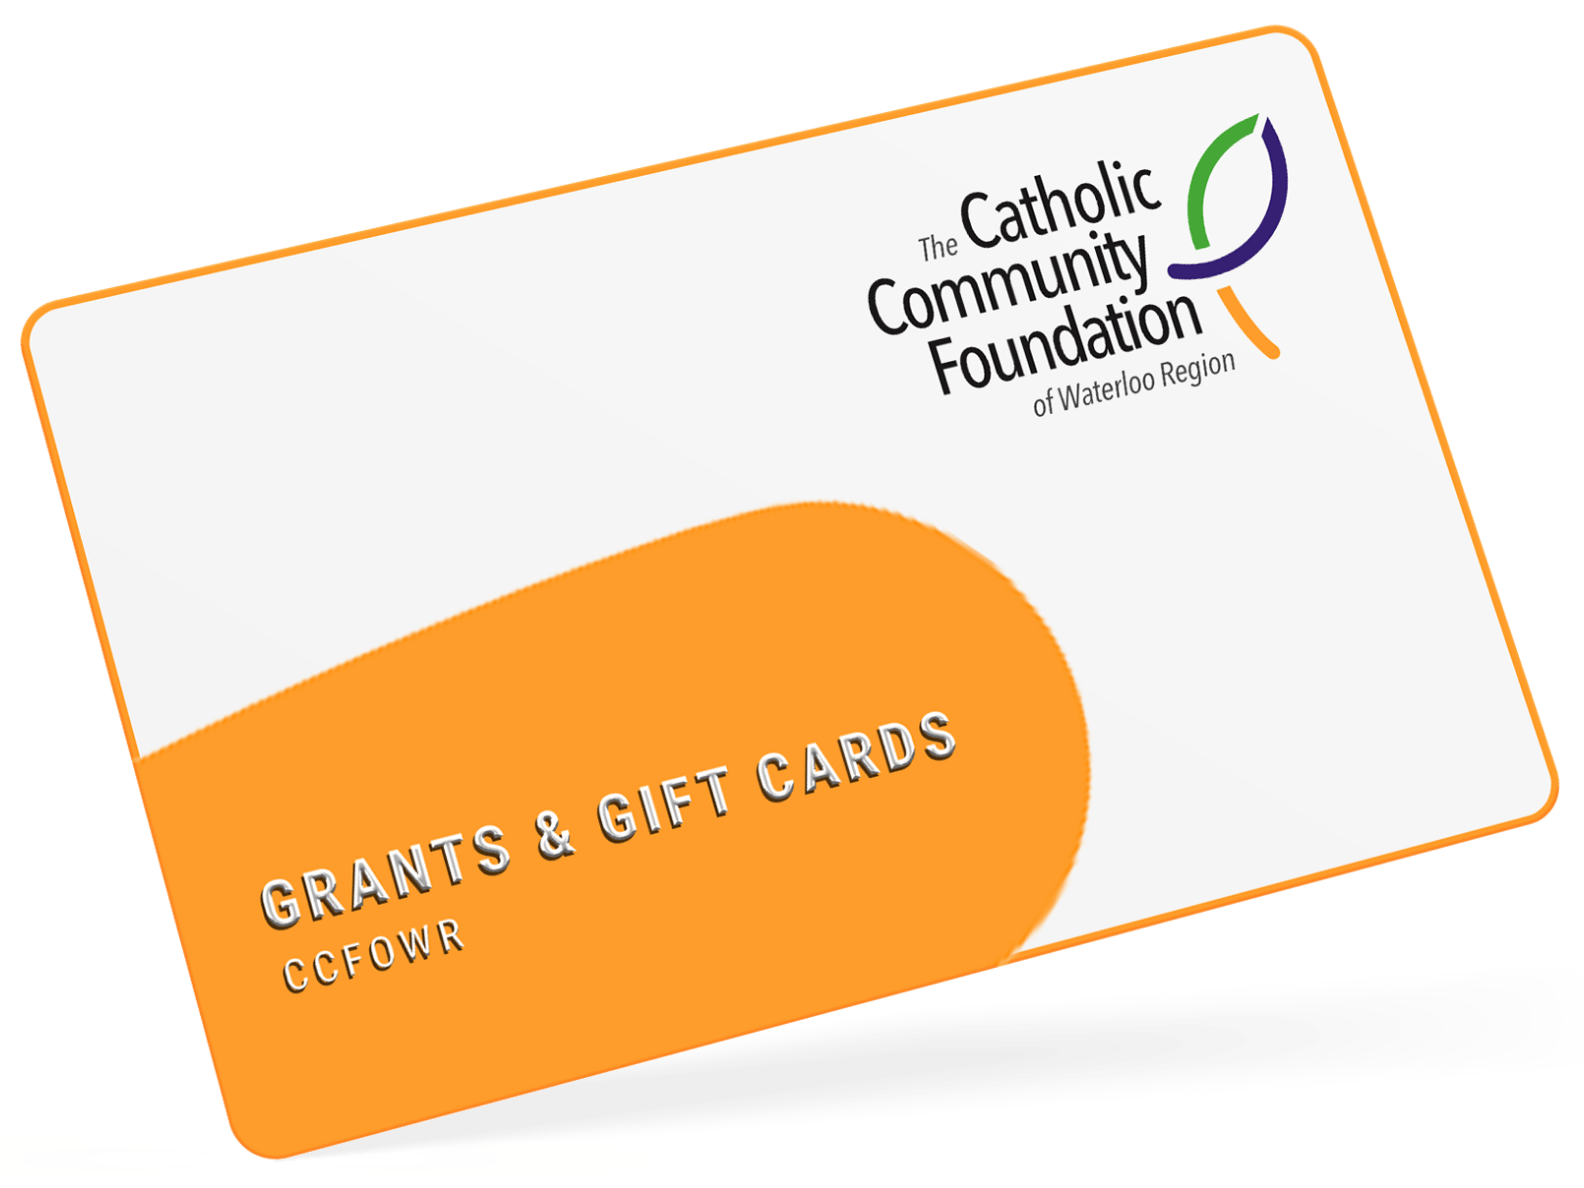 Grants & Gift Cards Image